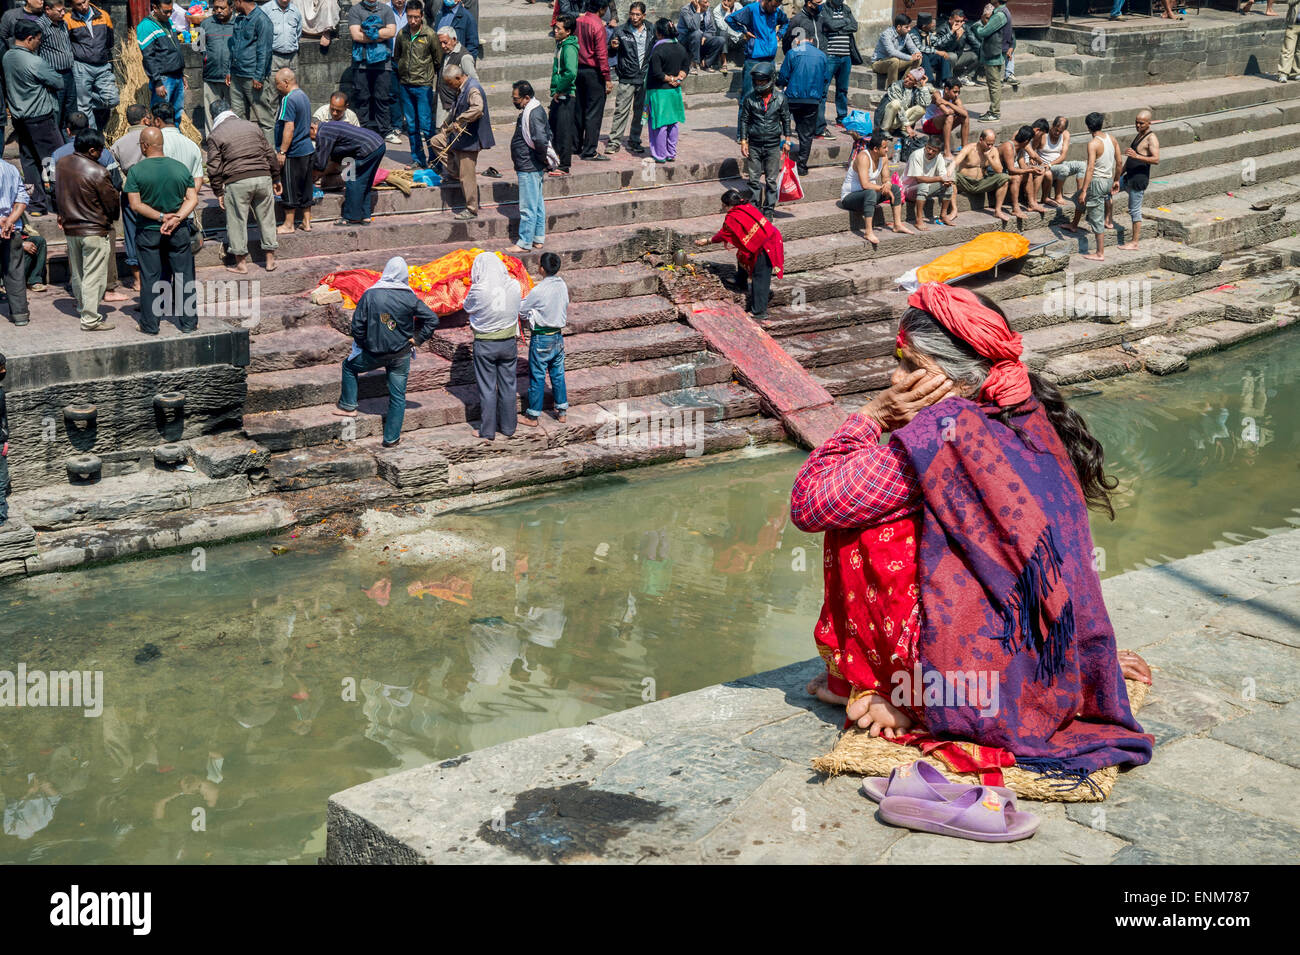 Pashupatinath Temple in Kathmandu, with cremation ghats on the banks of the Bagmati River. - Stock Image